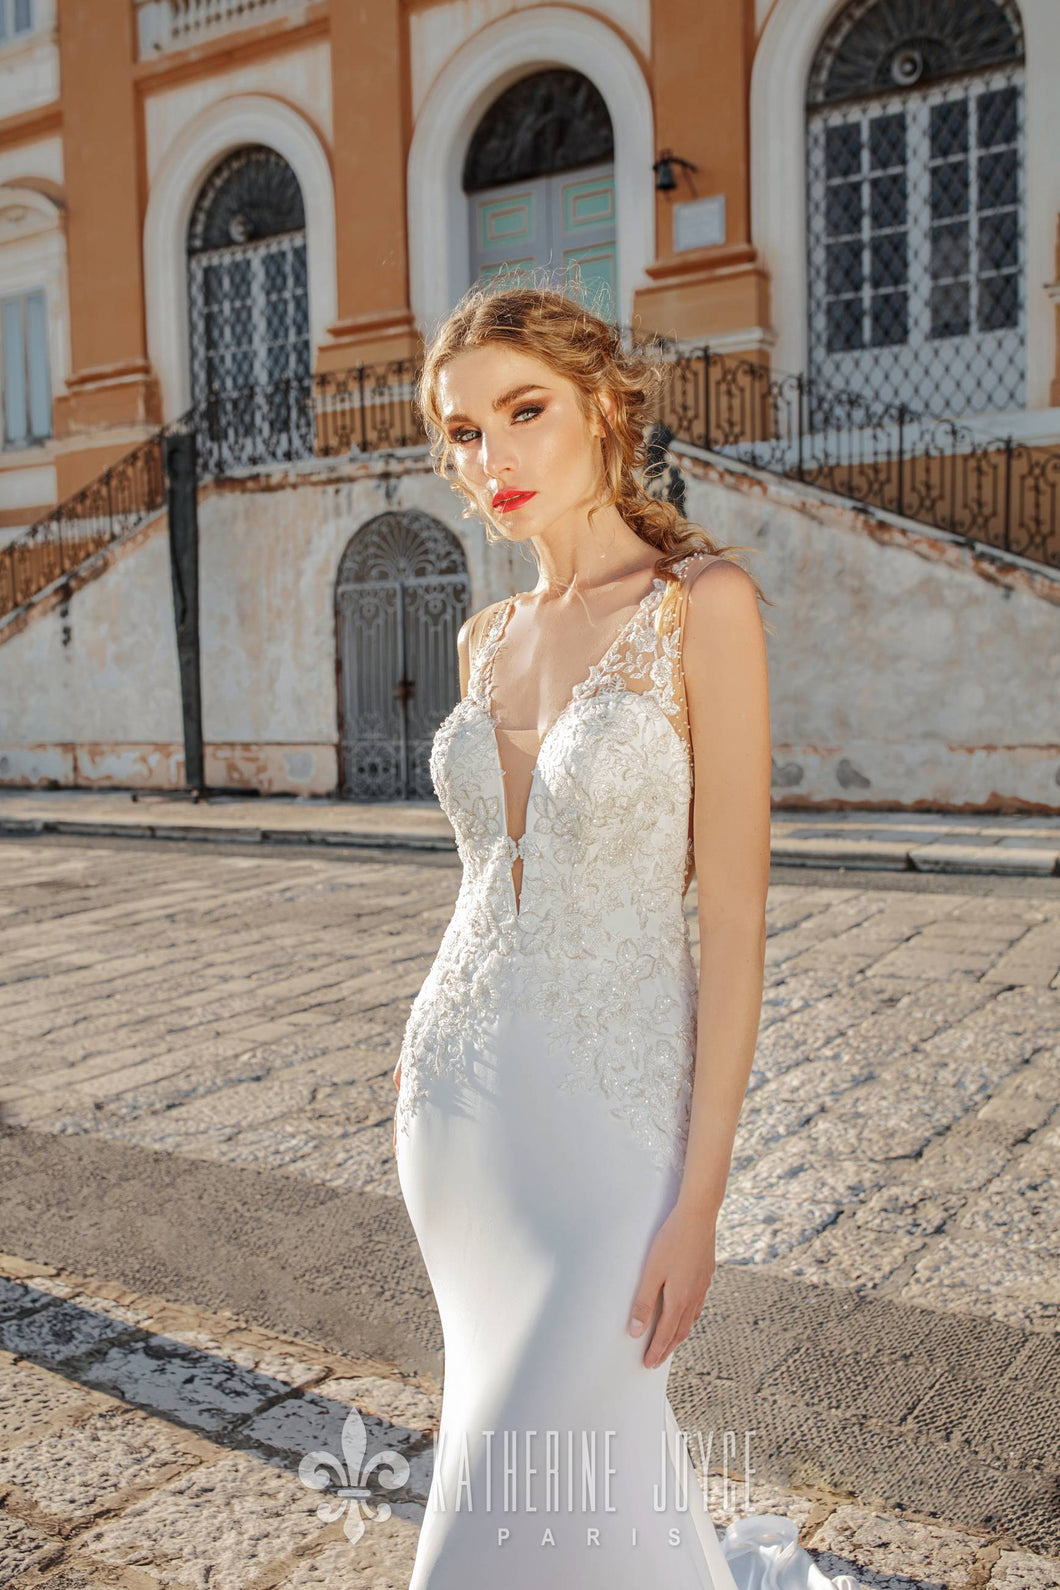 Napoli 'Louse' Katherine Joyce Paris RTW 16038-320 Ready To Wear European Bridal Wedding Gown Designer Philippines